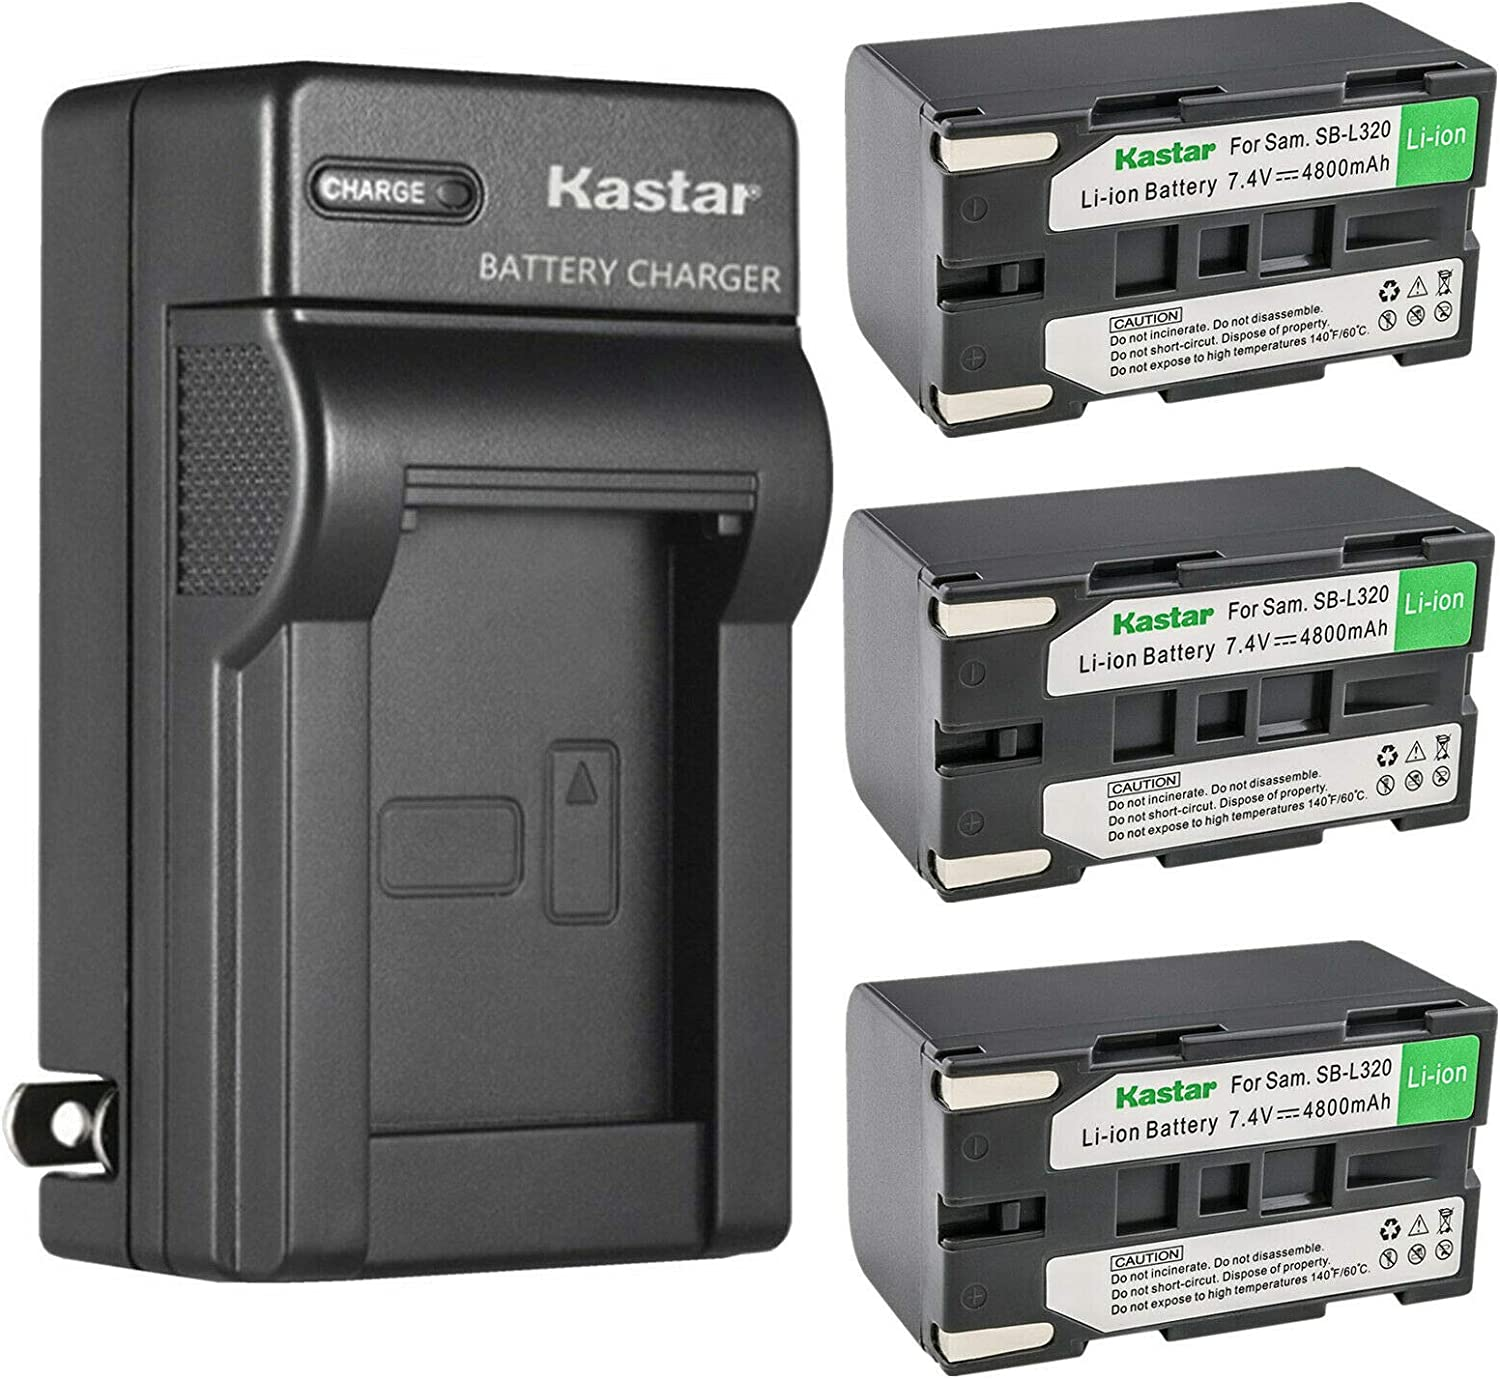 Kastar Max 85% OFF 3-Pack famous SB-L320 Battery and Wall Charger fo AC Replacement